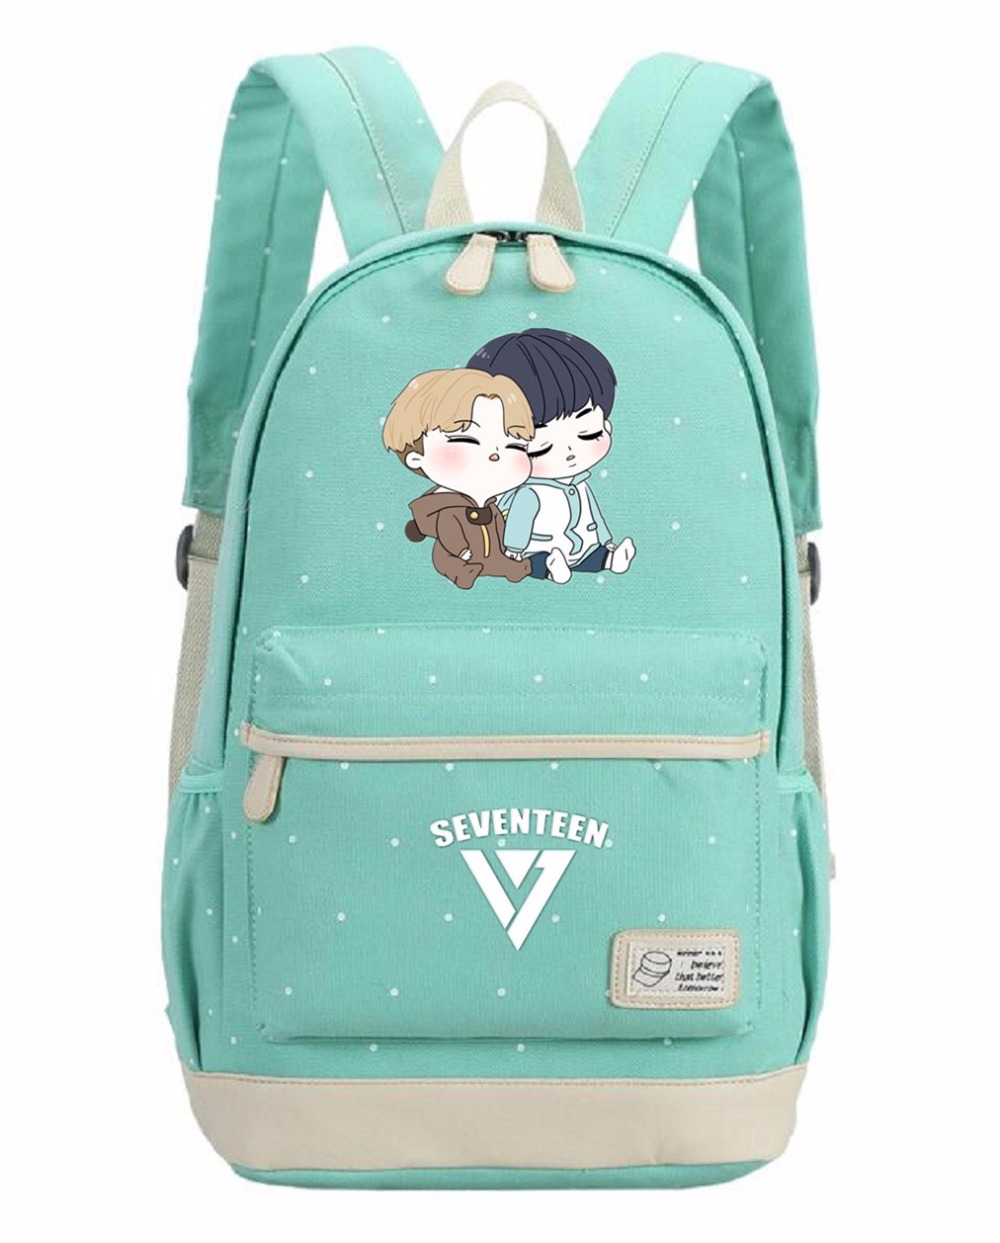 Komikoy Seventeen 17 Canvas Laptop Bag Flower Rucksacks Backpack Student School Travel Bags Daypack Removing Obstruction Backpacks Luggage & Bags